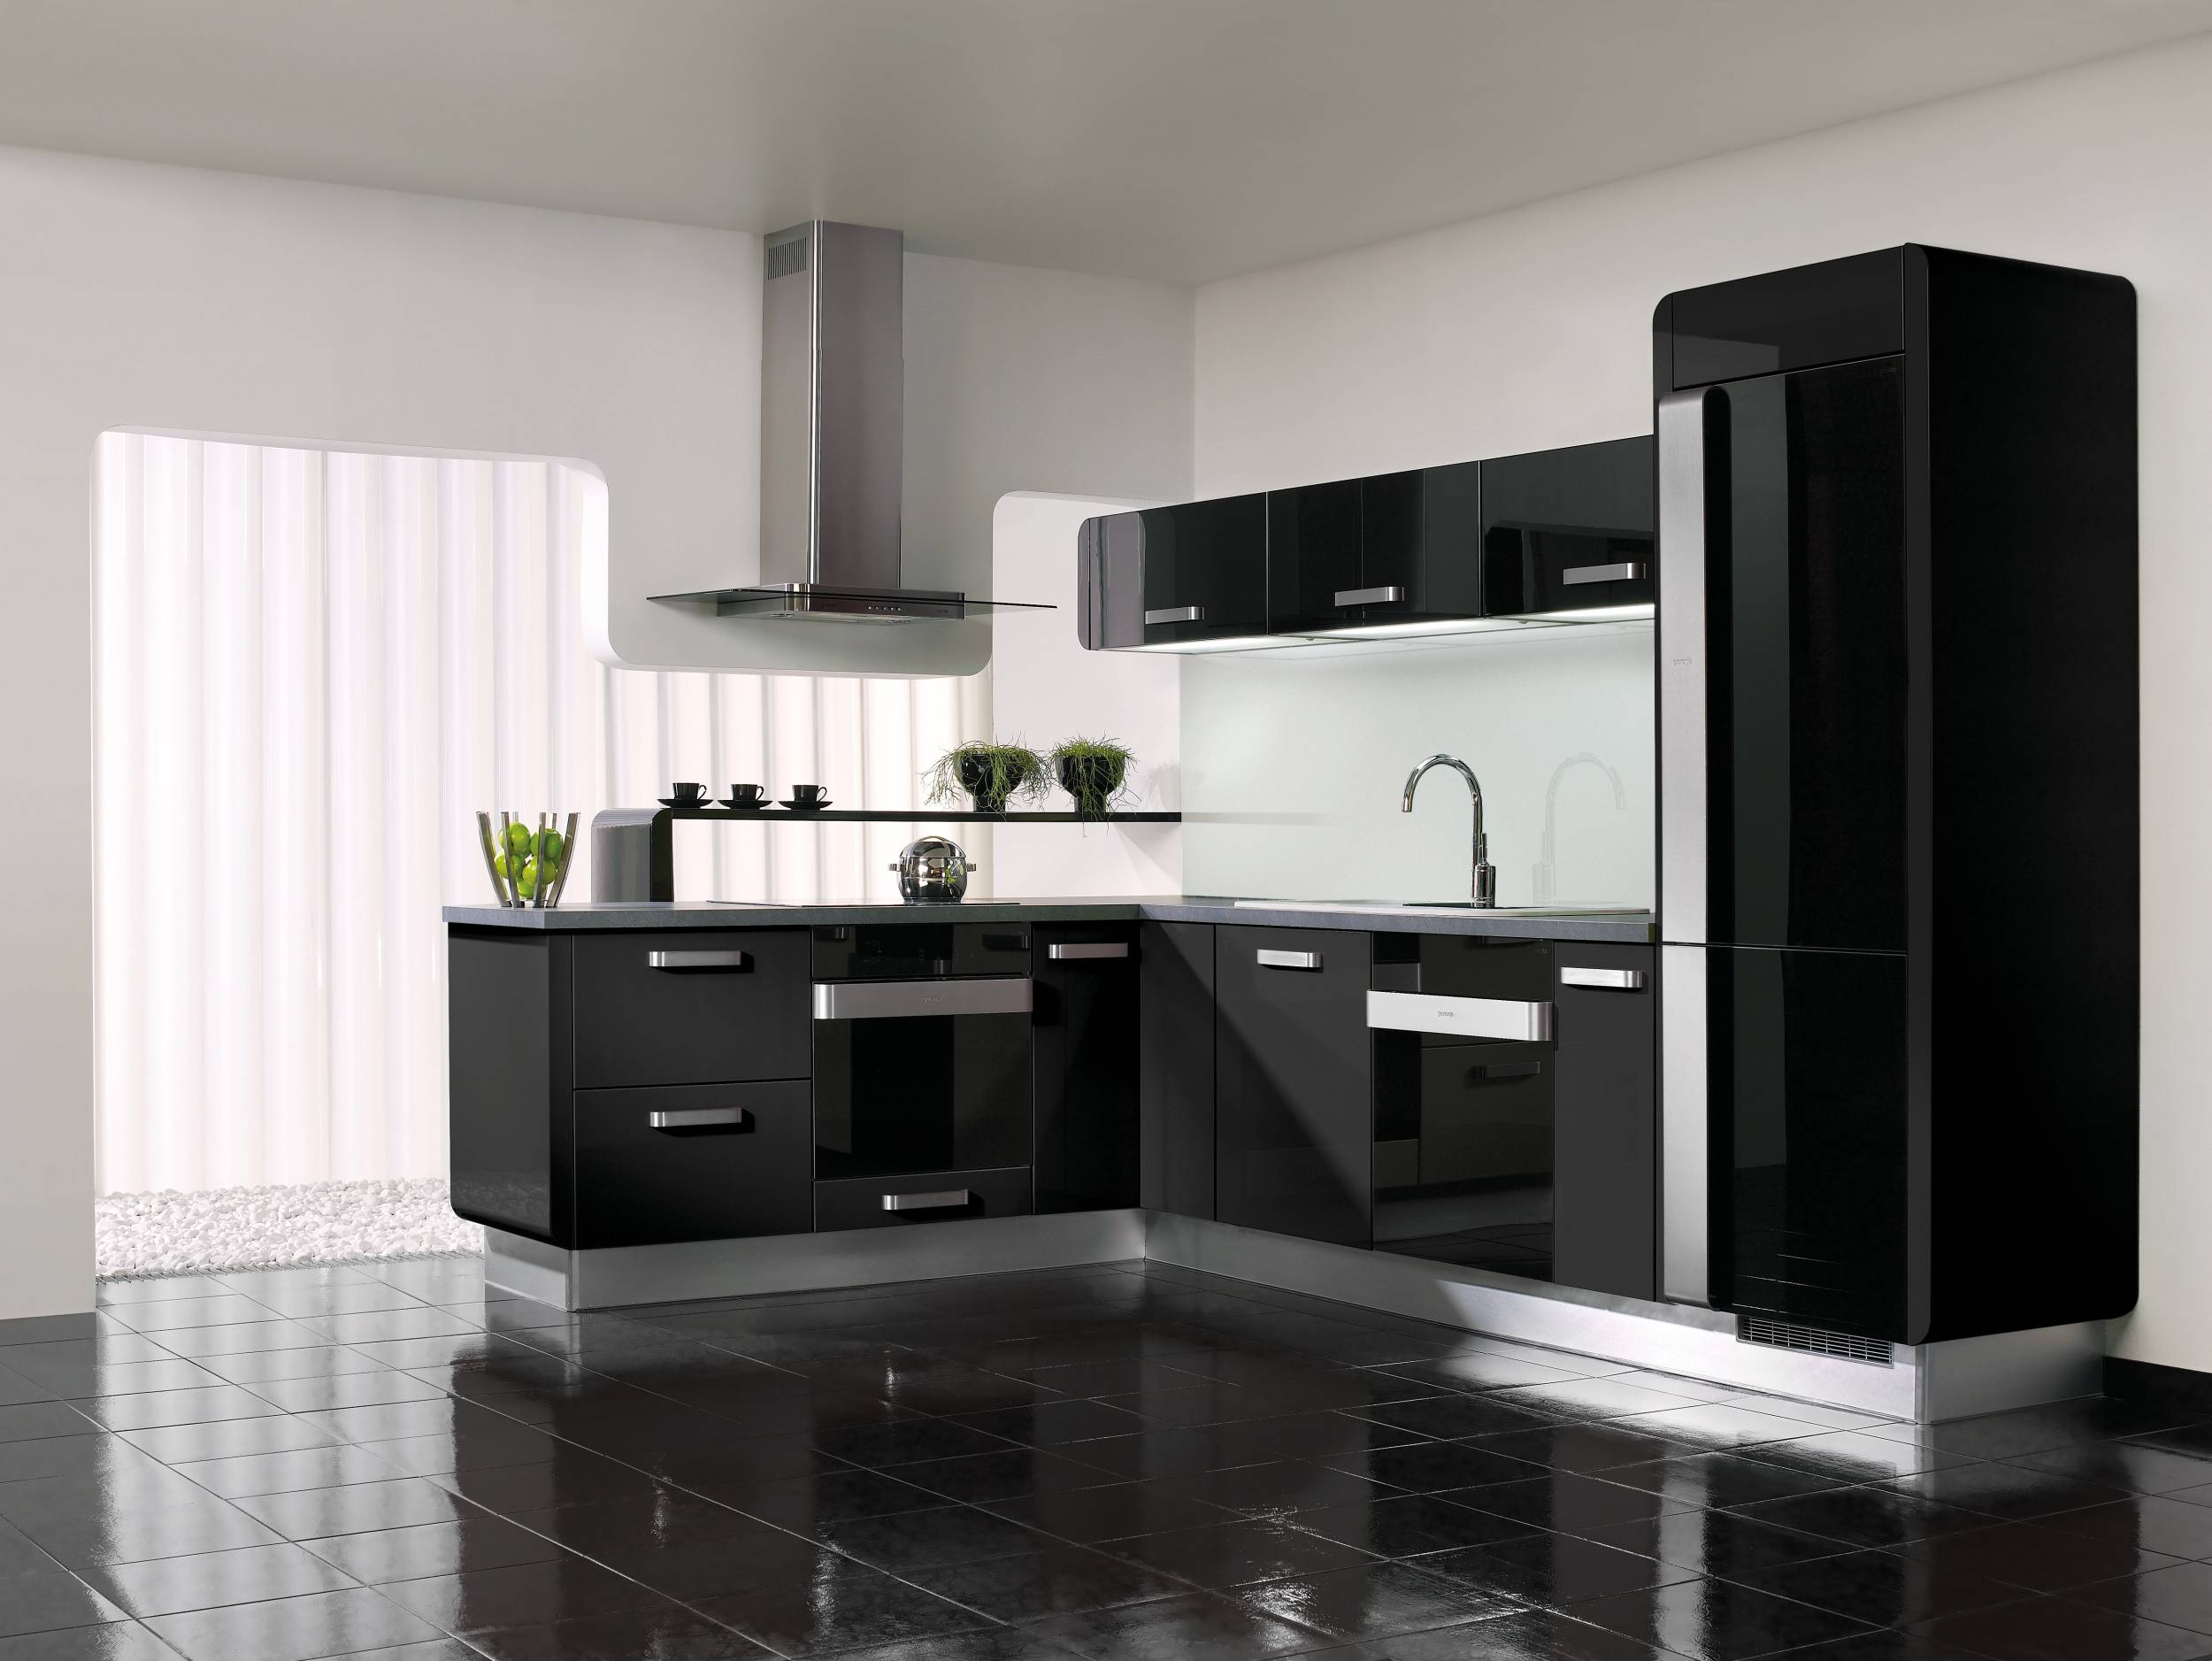 delta gorenje. Black Bedroom Furniture Sets. Home Design Ideas